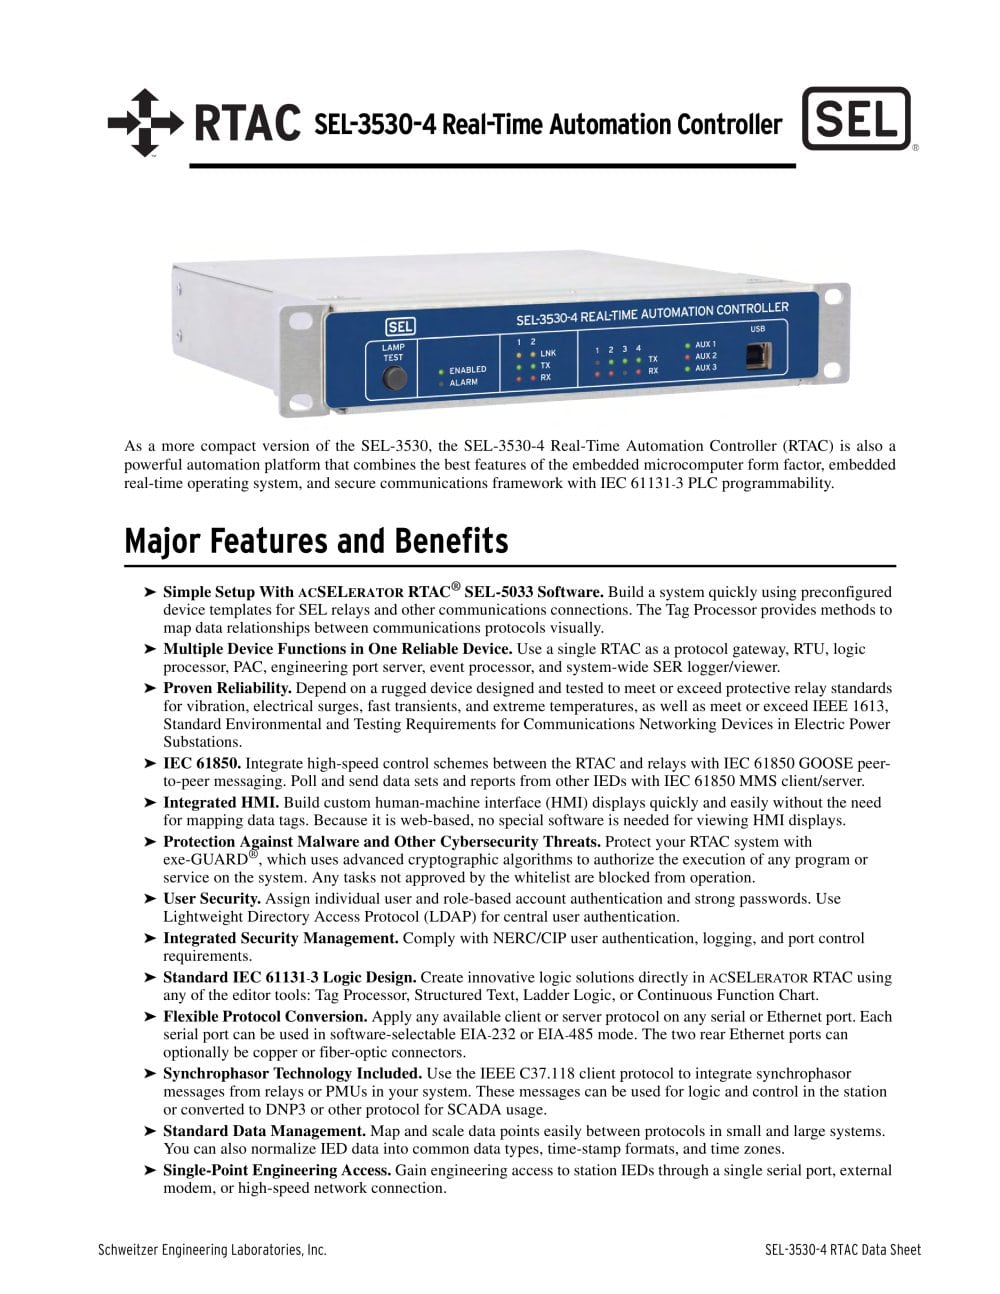 Sel 3530 4 real time automation controller rtac schweitzer sel 3530 4 real time automation controller rtac 1 16 pages ccuart Image collections